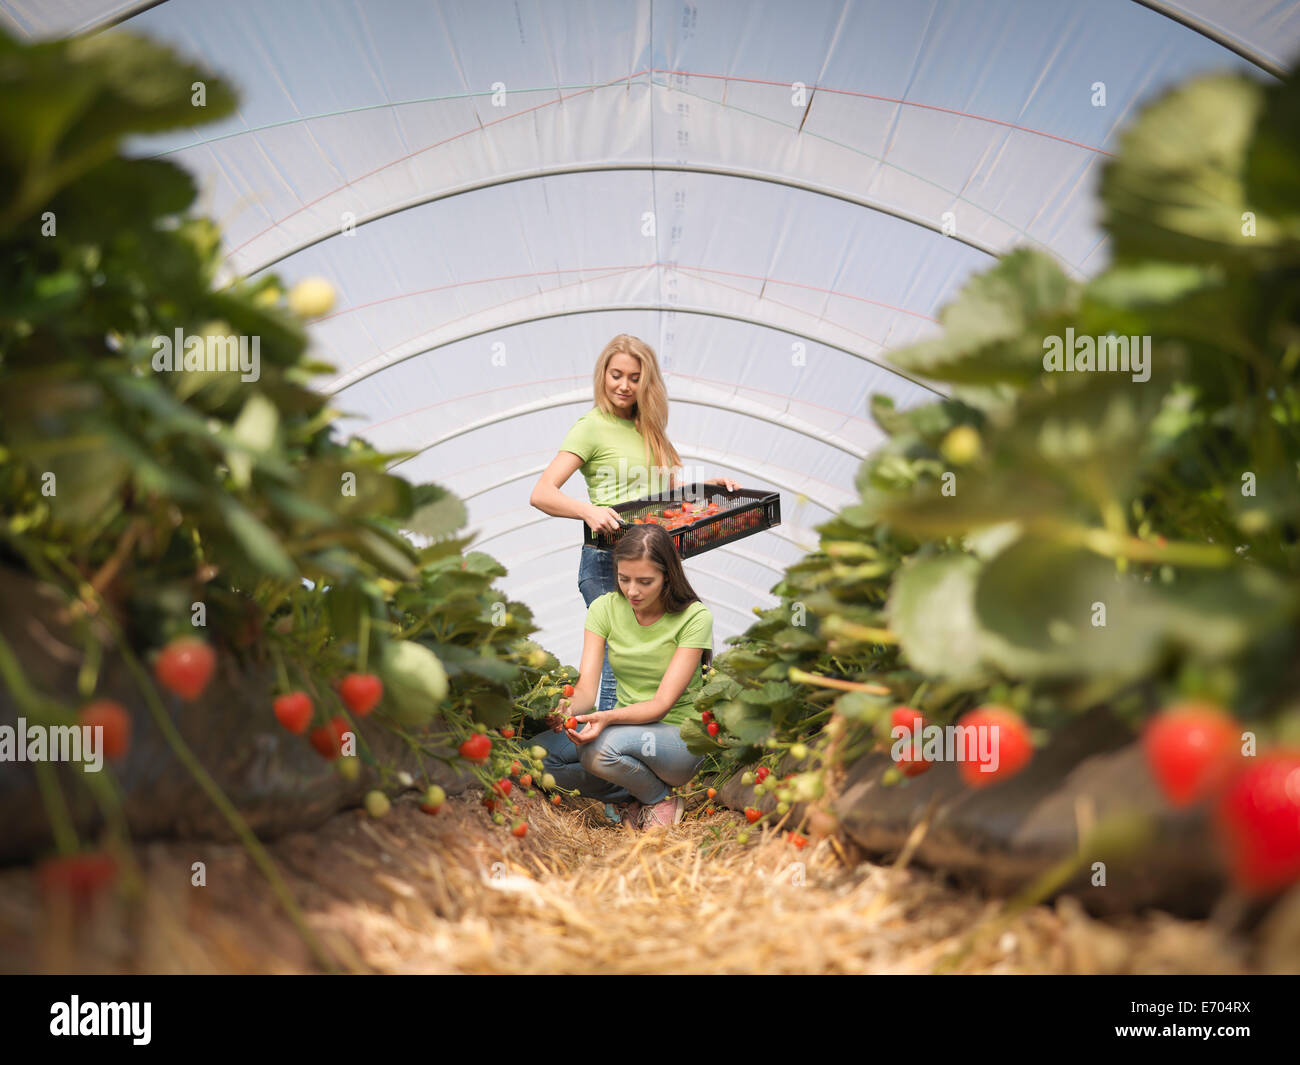 Workers picking strawberries in fruit farm - Stock Image